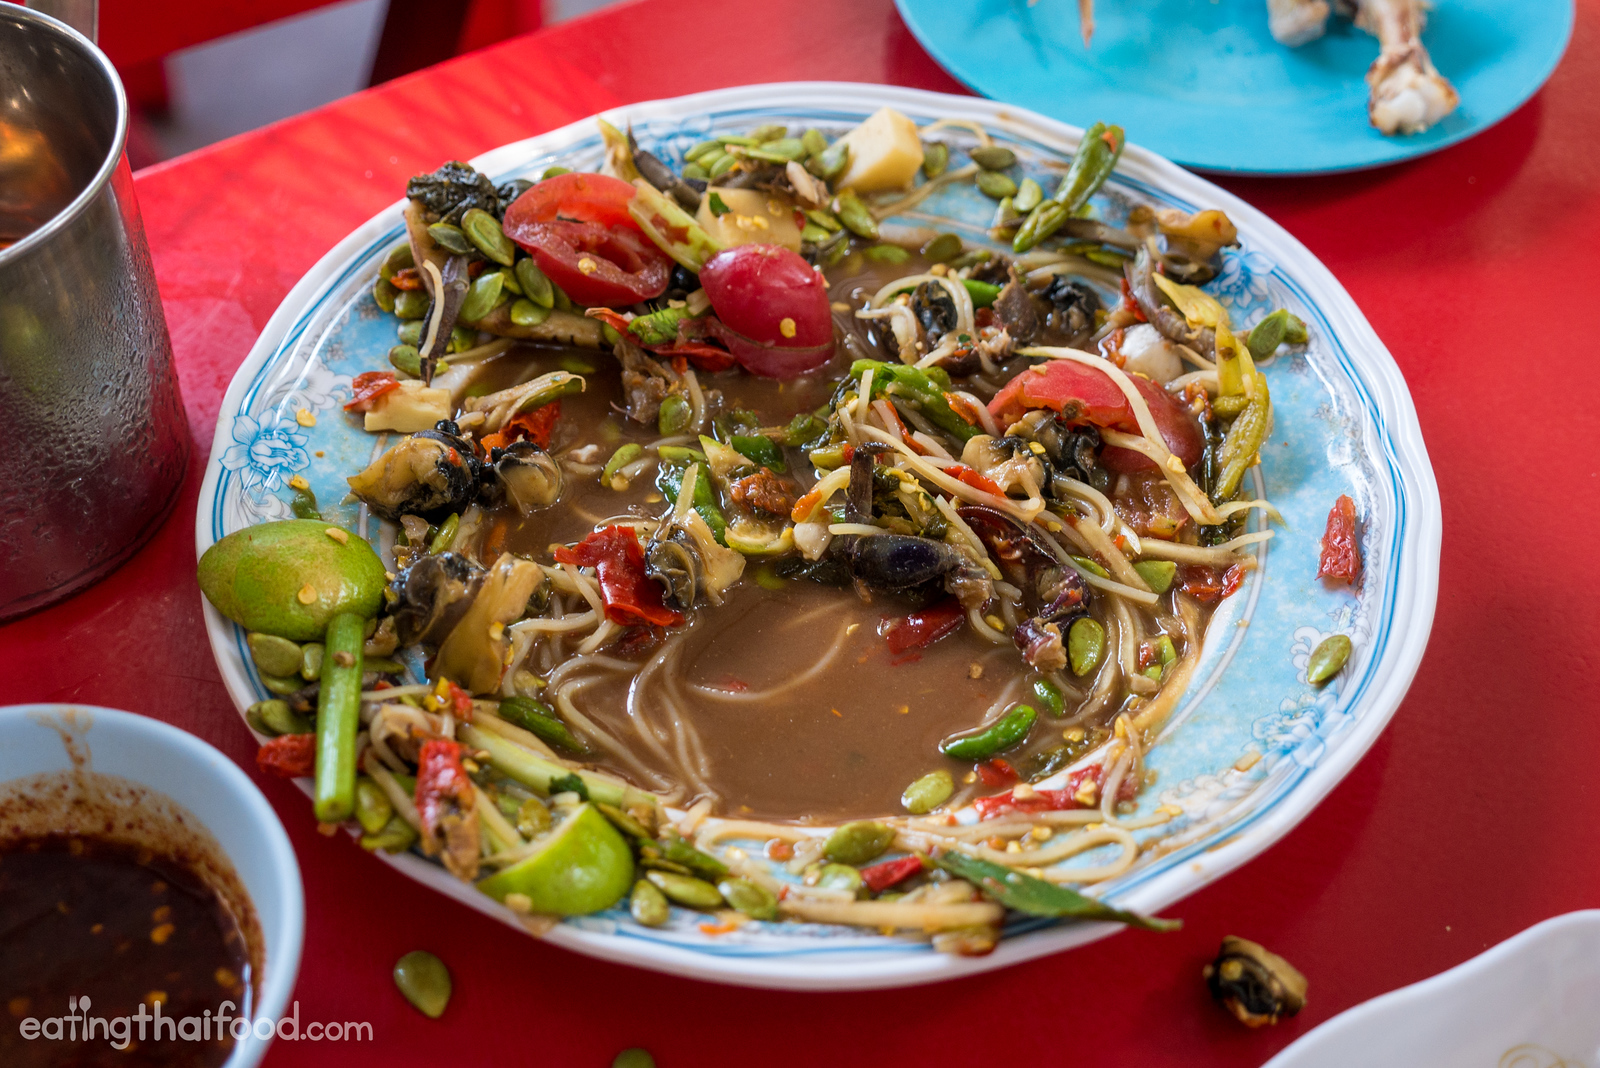 Jungle pounded salad (ตำป่า tam pa)